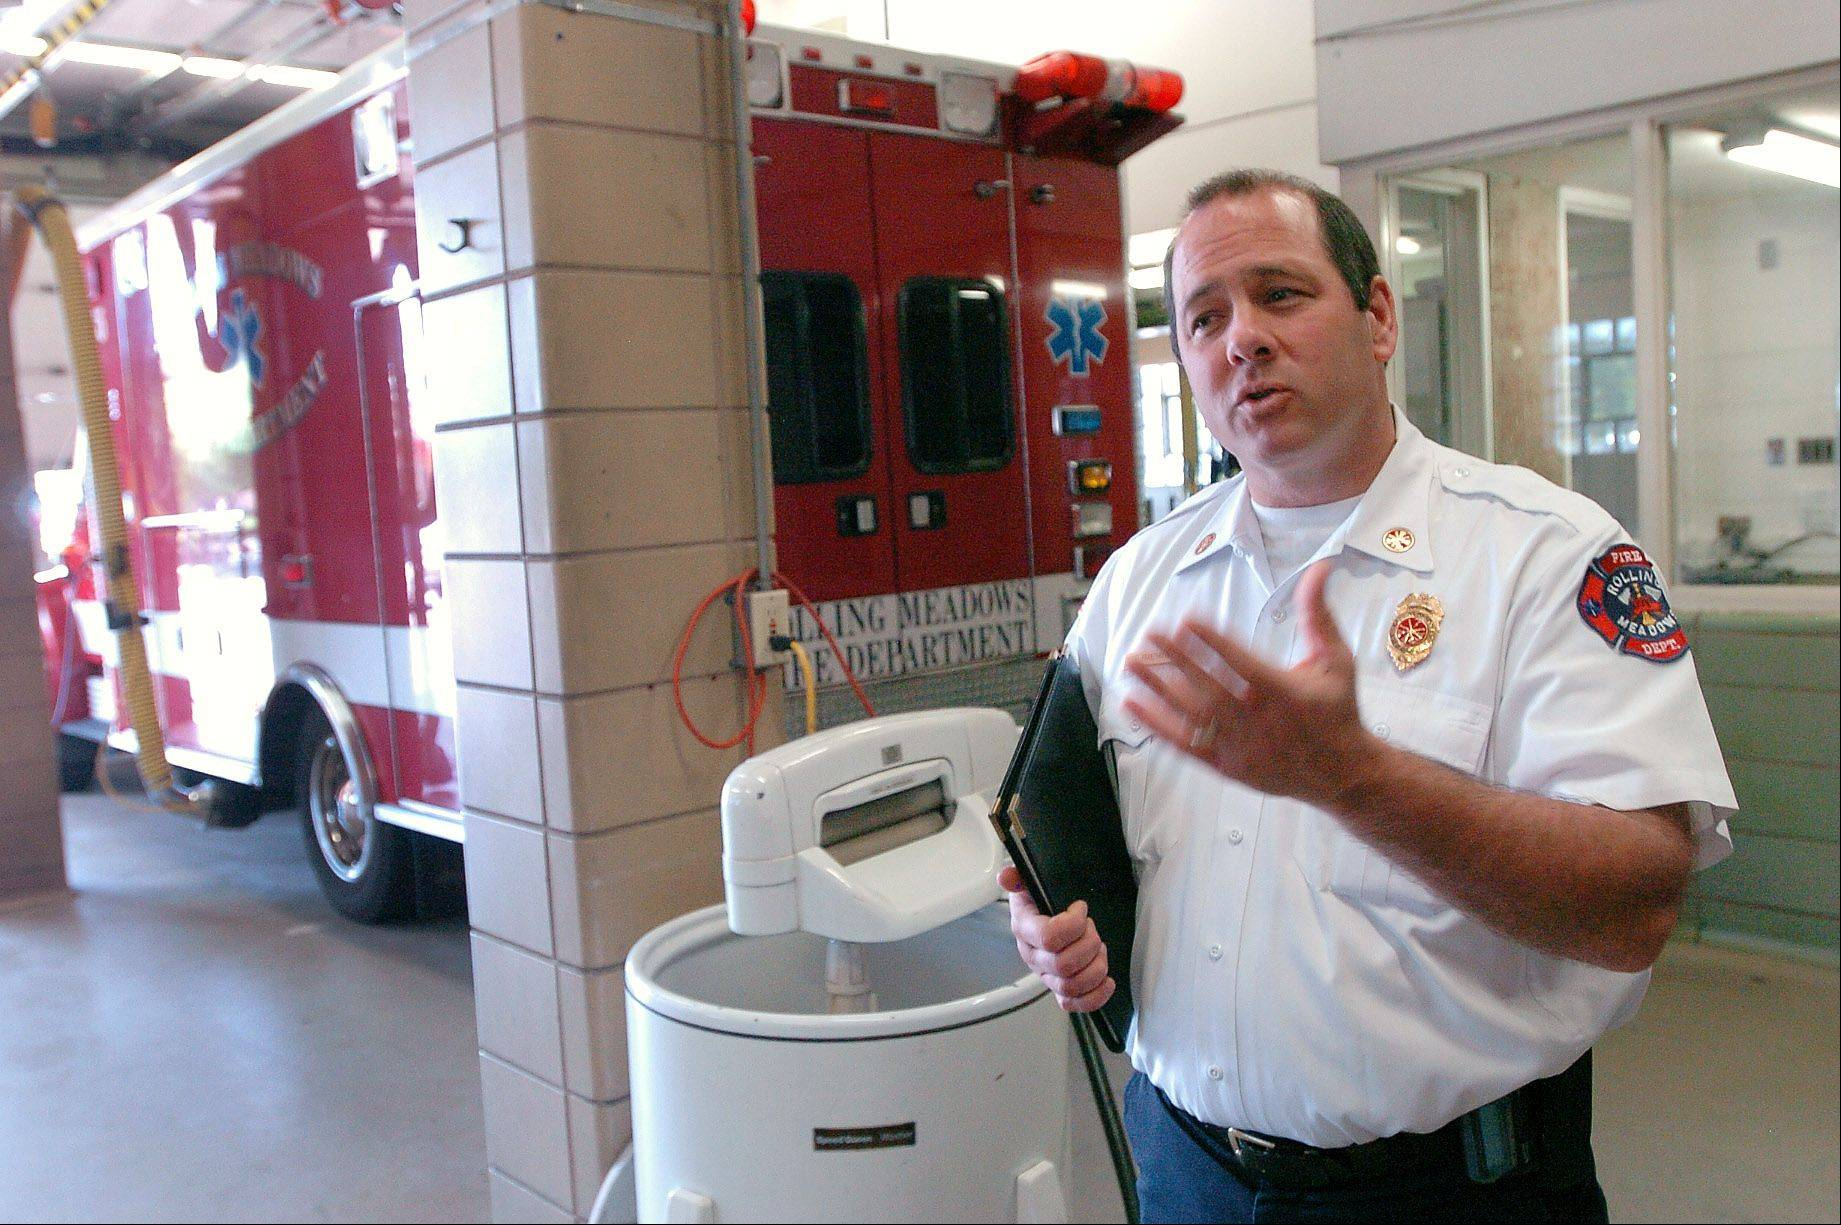 Rolling Meadows Fire Chief Scott Franzgrote